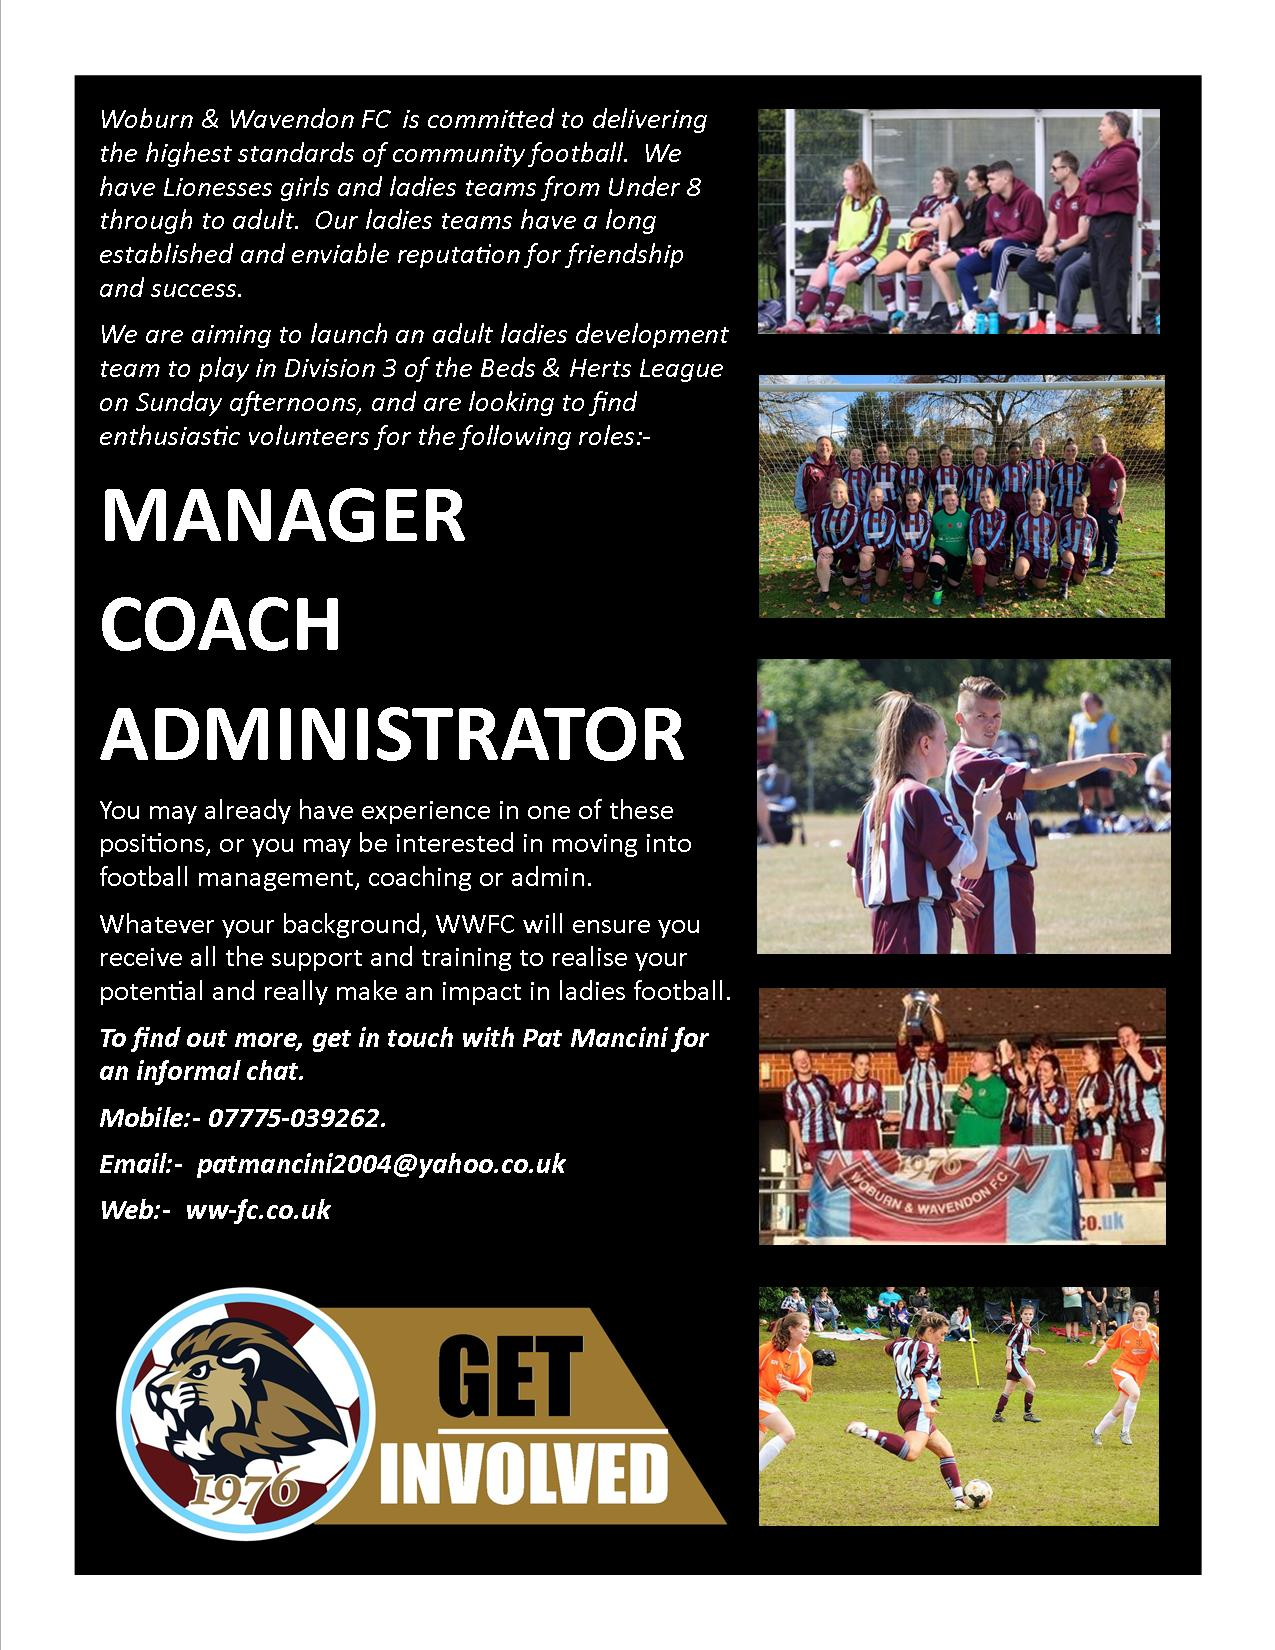 Get Involved! An opportunity to run a new WWFC Women's team. post thumbnail image